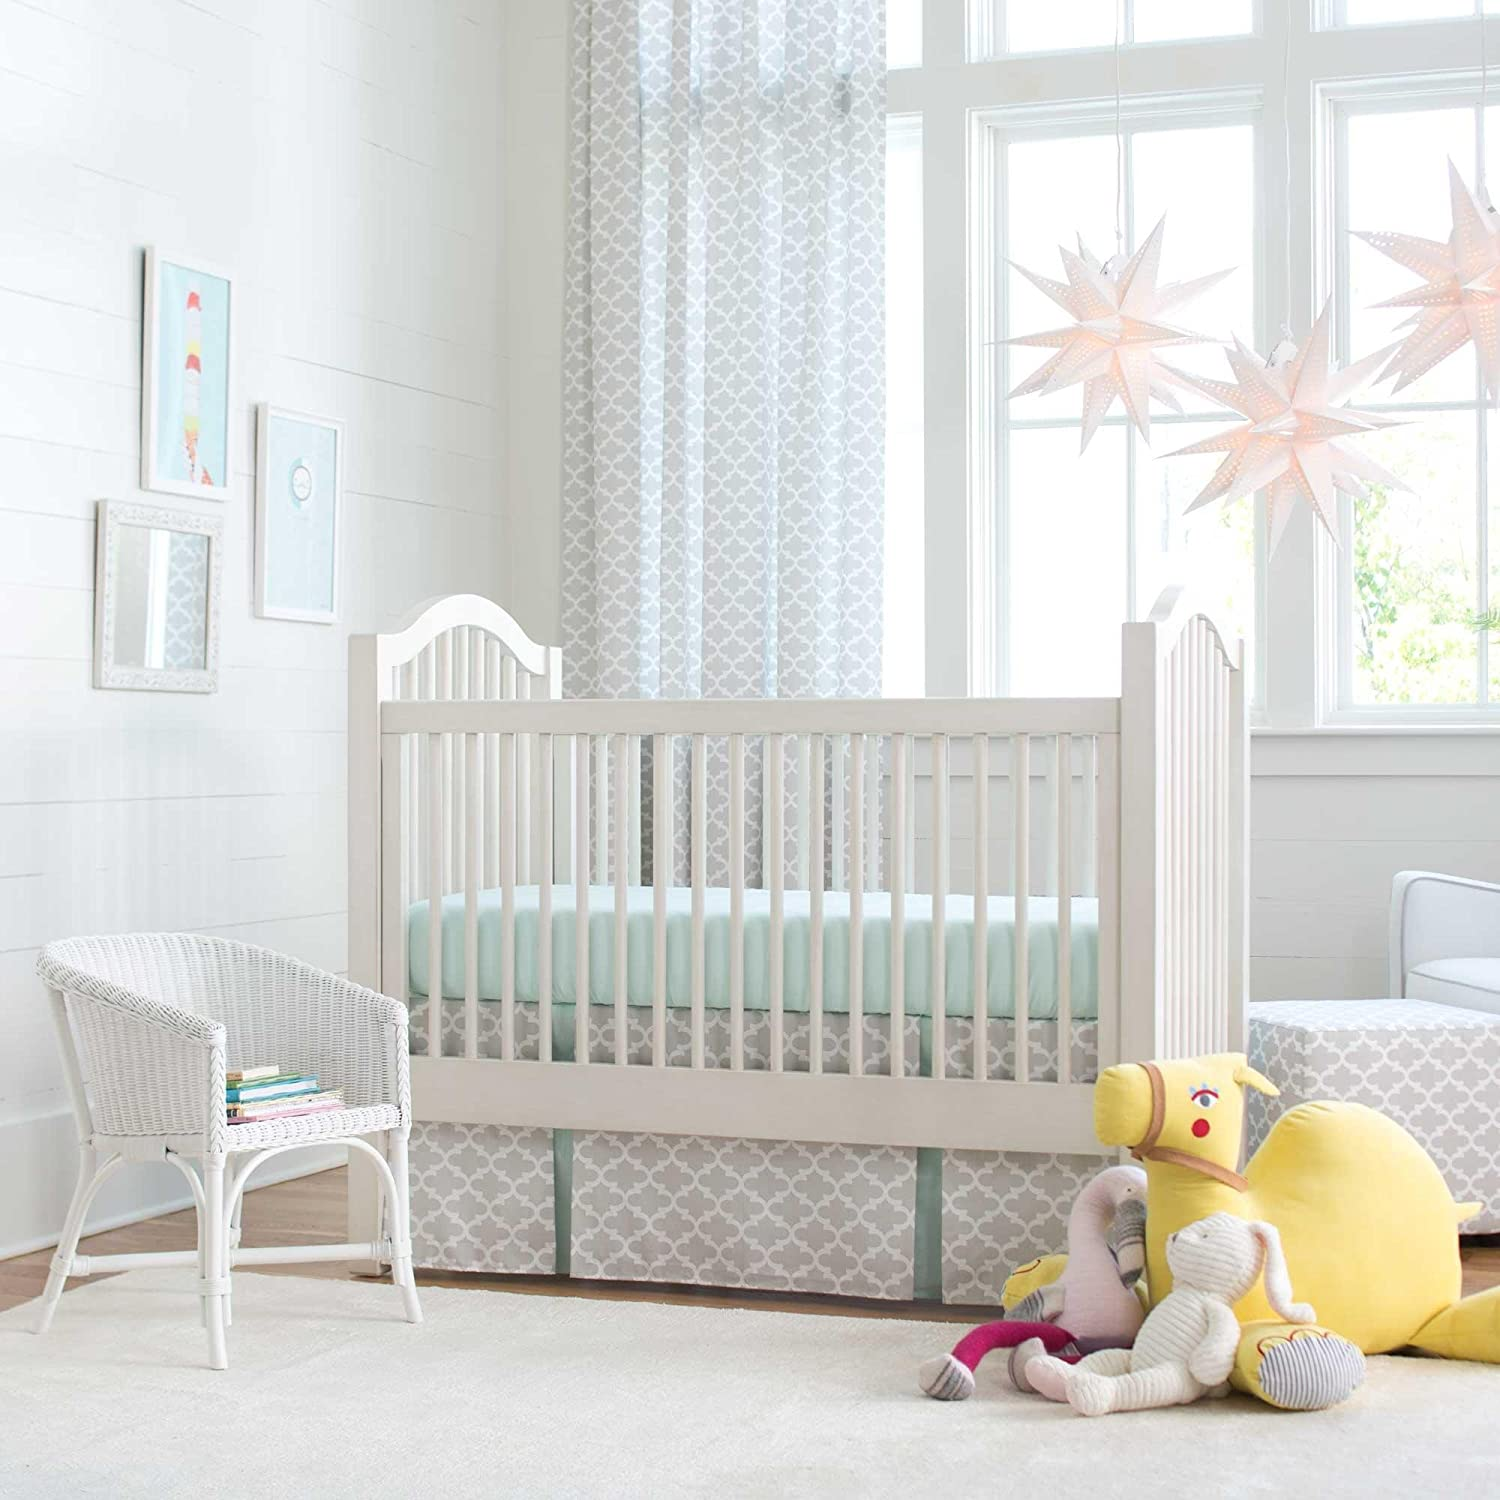 Carousel Designs French Gray and Mint Quatrefoil 2-Piece Crib Bedding Set by Carousel Designs   B00P8DTWYE